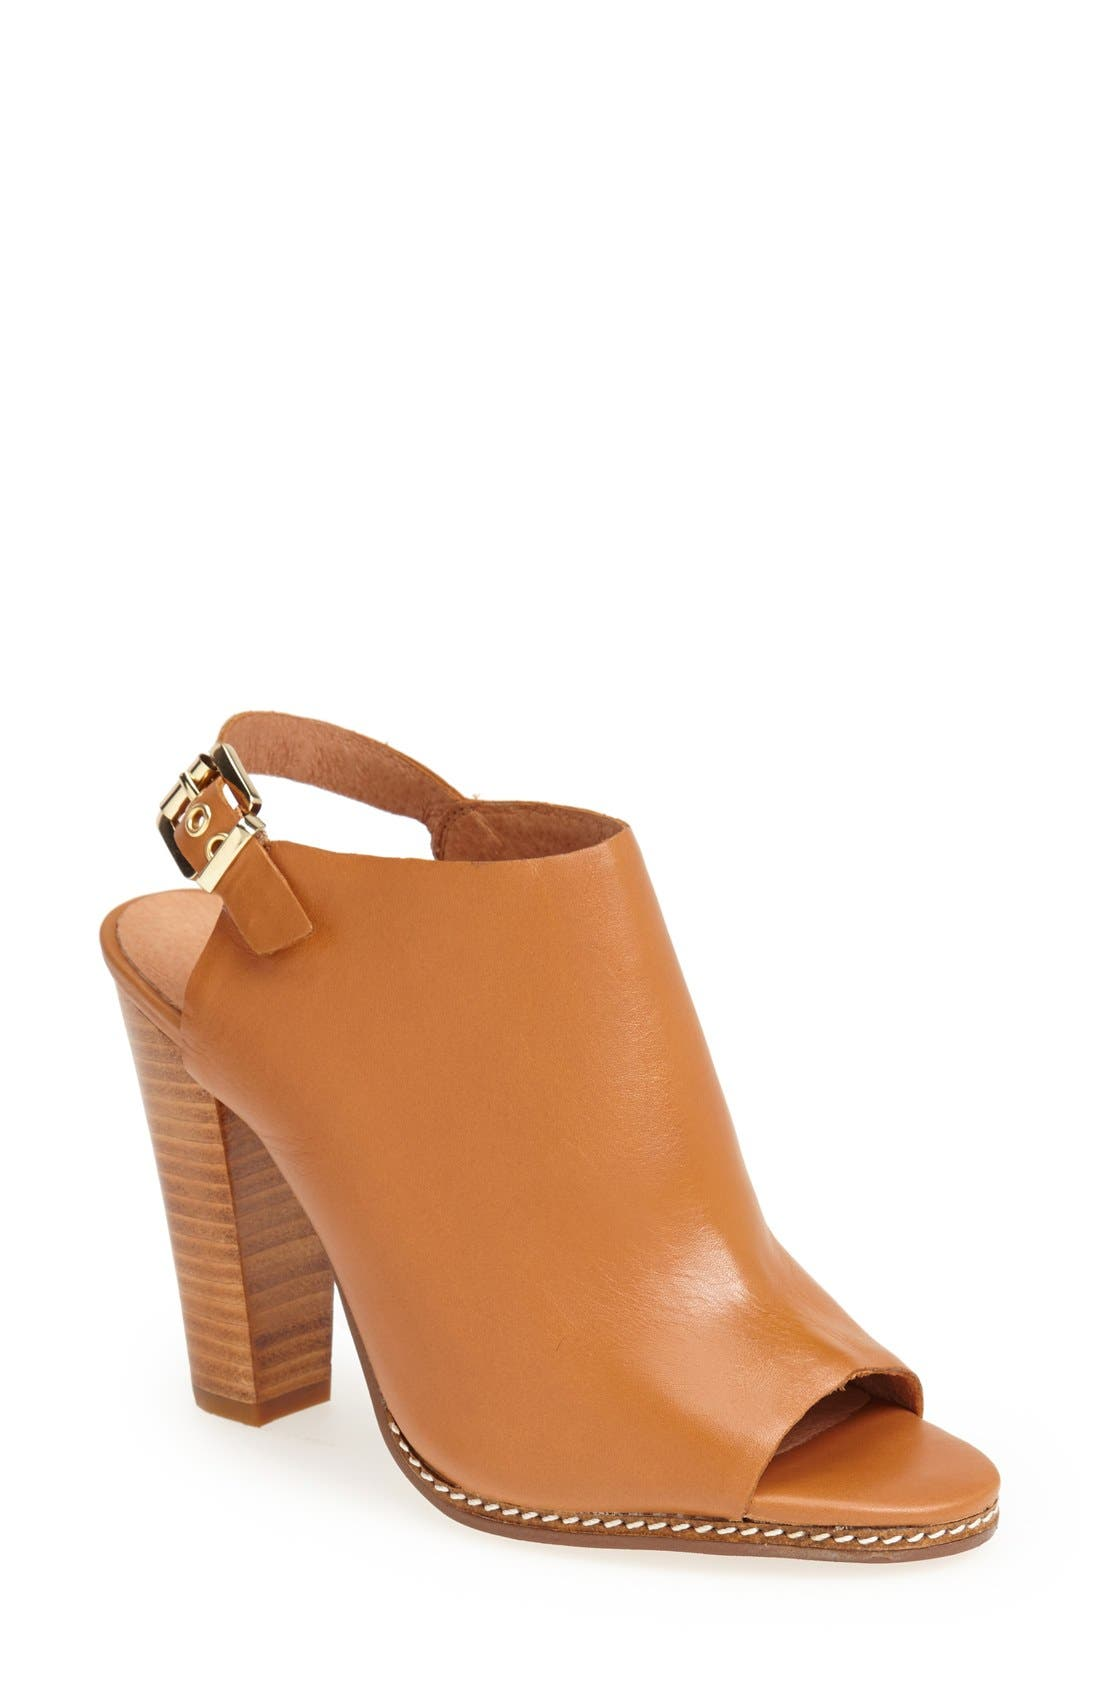 Alternate Image 1 Selected - Halogen 'Sasha' Leather Sandal (Women)